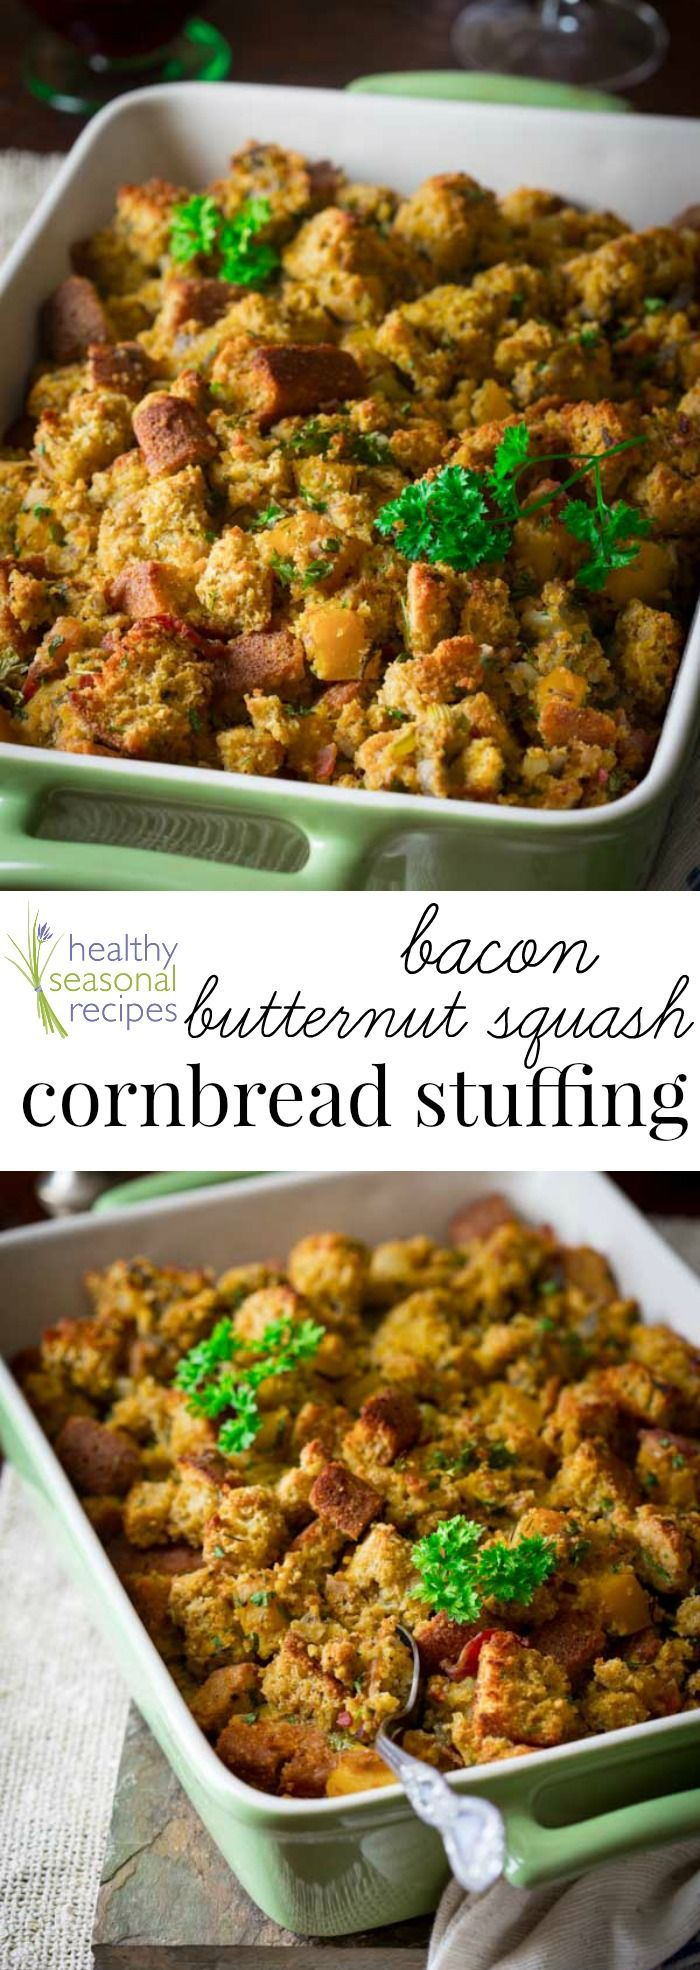 Blog post at Healthy Seasonal Recipes : A healthy gluten-free cornbread stuffing recipe with bacon and butternut squash for Thanksgiving. Seasoned with smoked paprika, sage and a p[..]